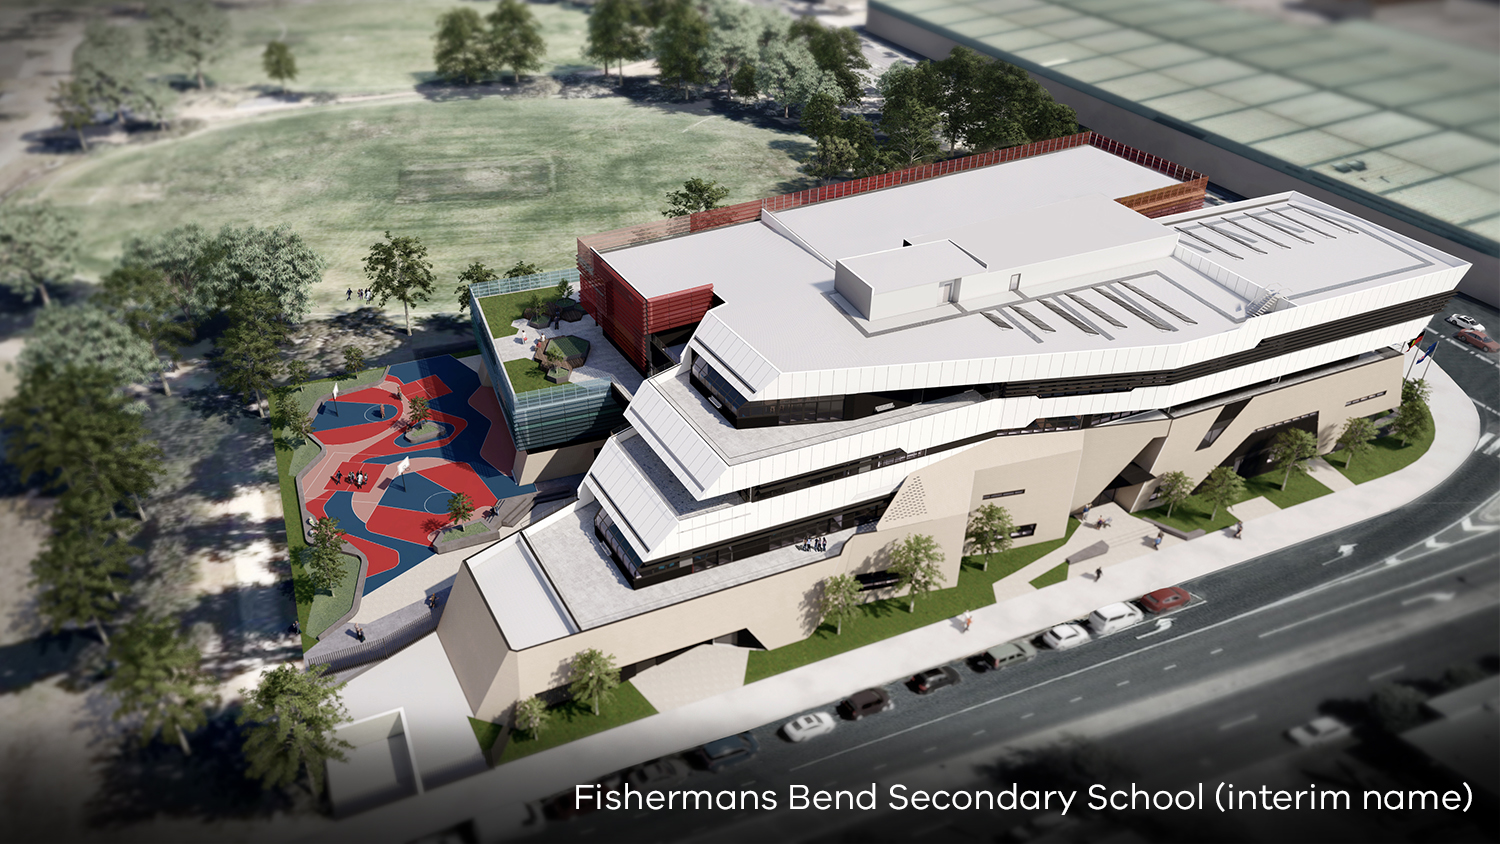 artist impression of fishermans bend secondary school